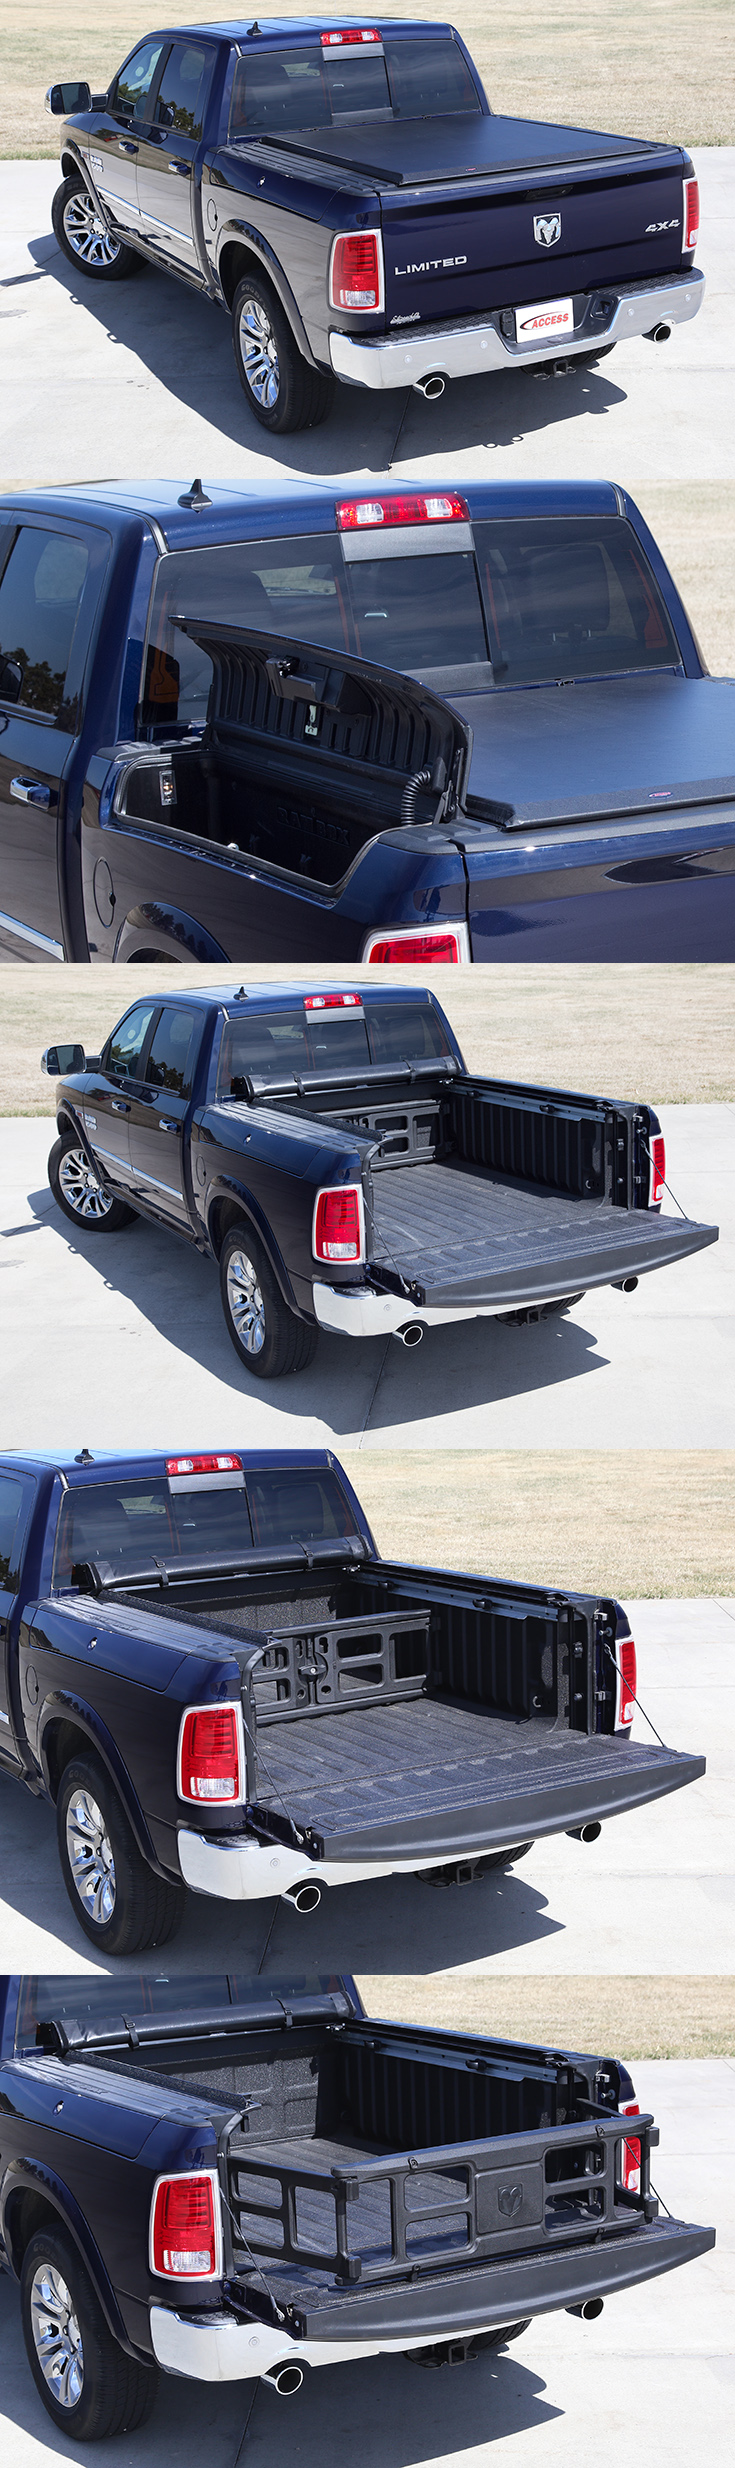 ACCESS® Limited RollUp Cover Tonneau cover, Trucks